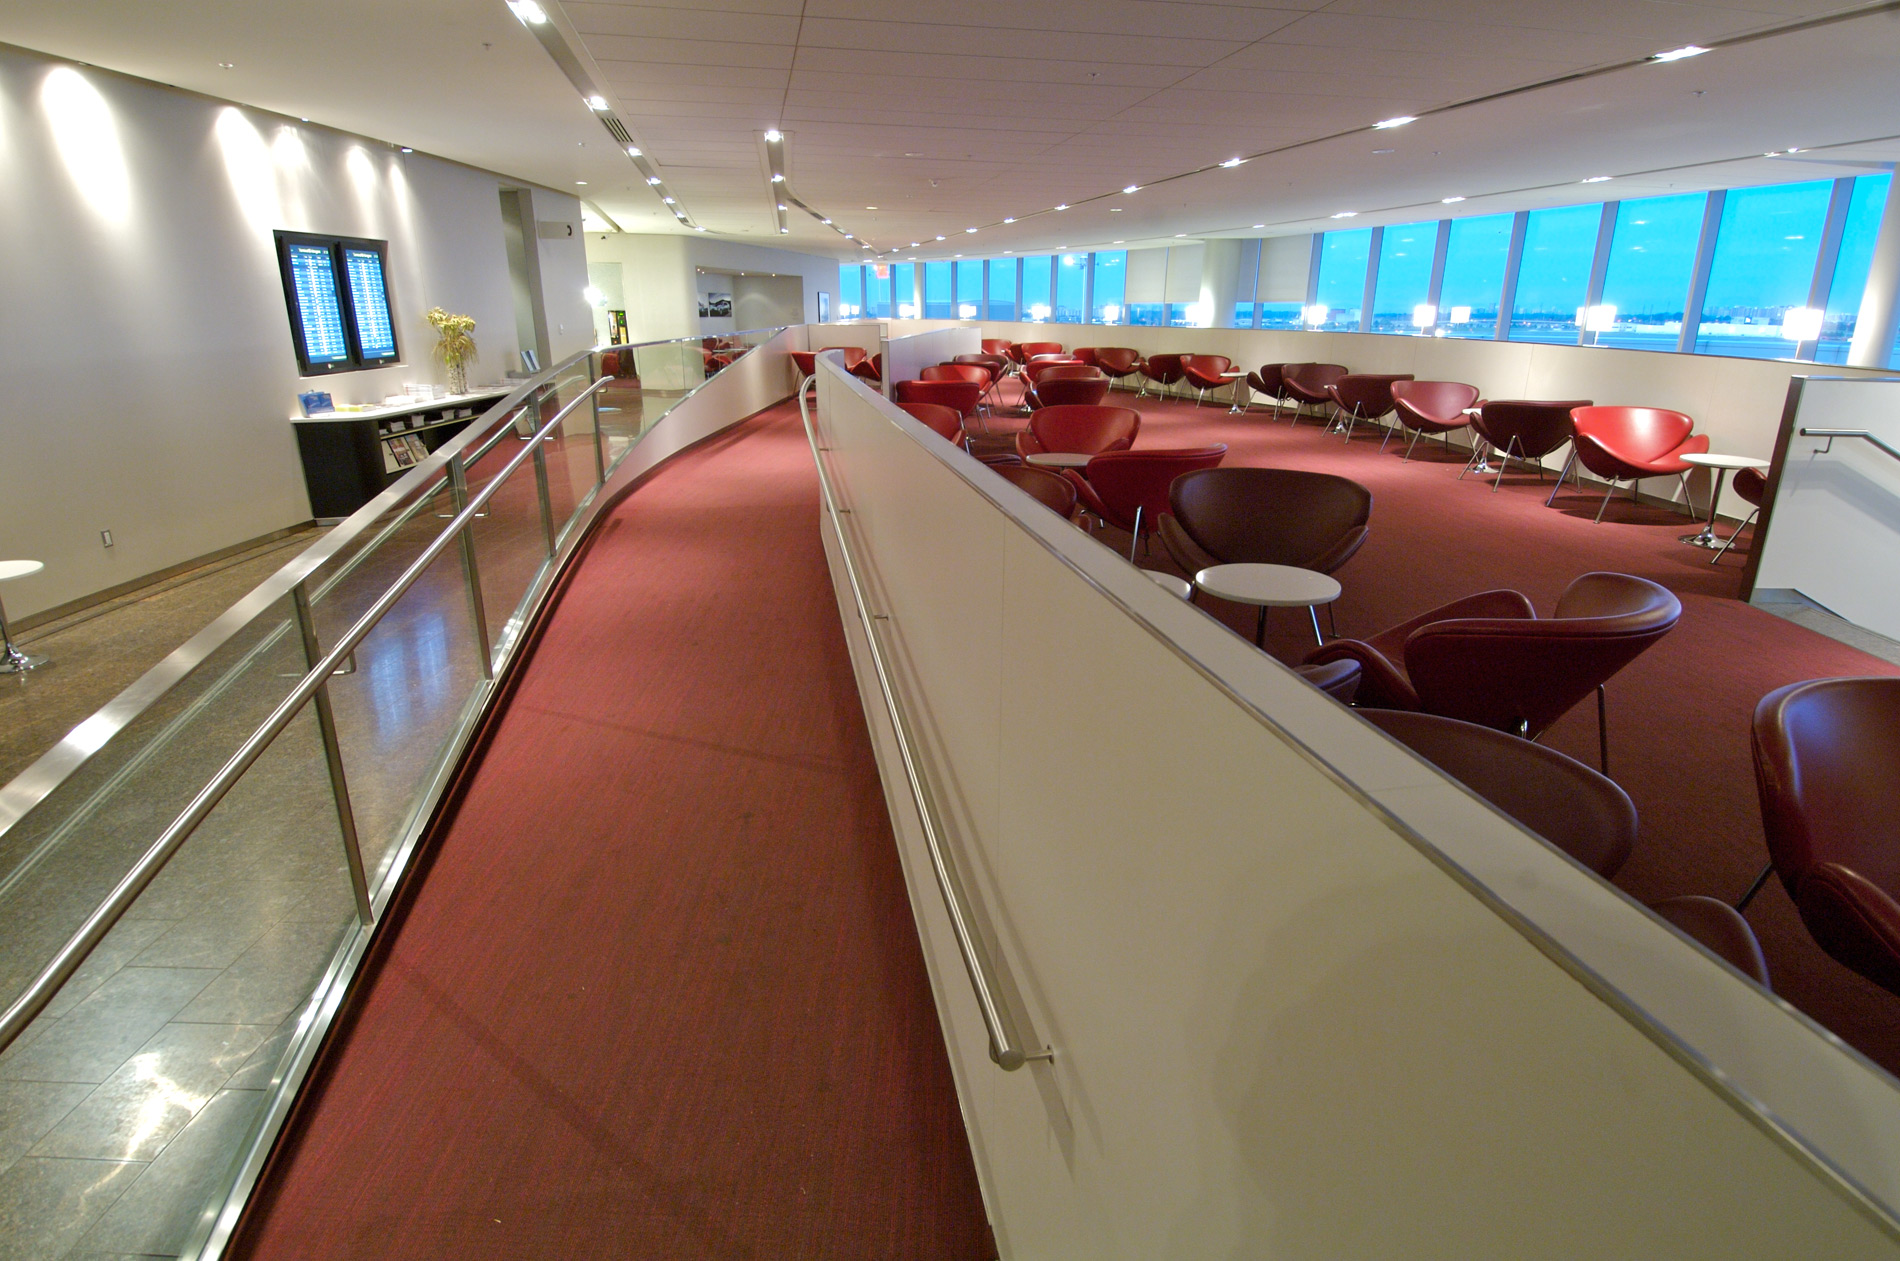 YYZ-Transboarder-Maple-Leaf-Lounge-seating-WEB.jpg